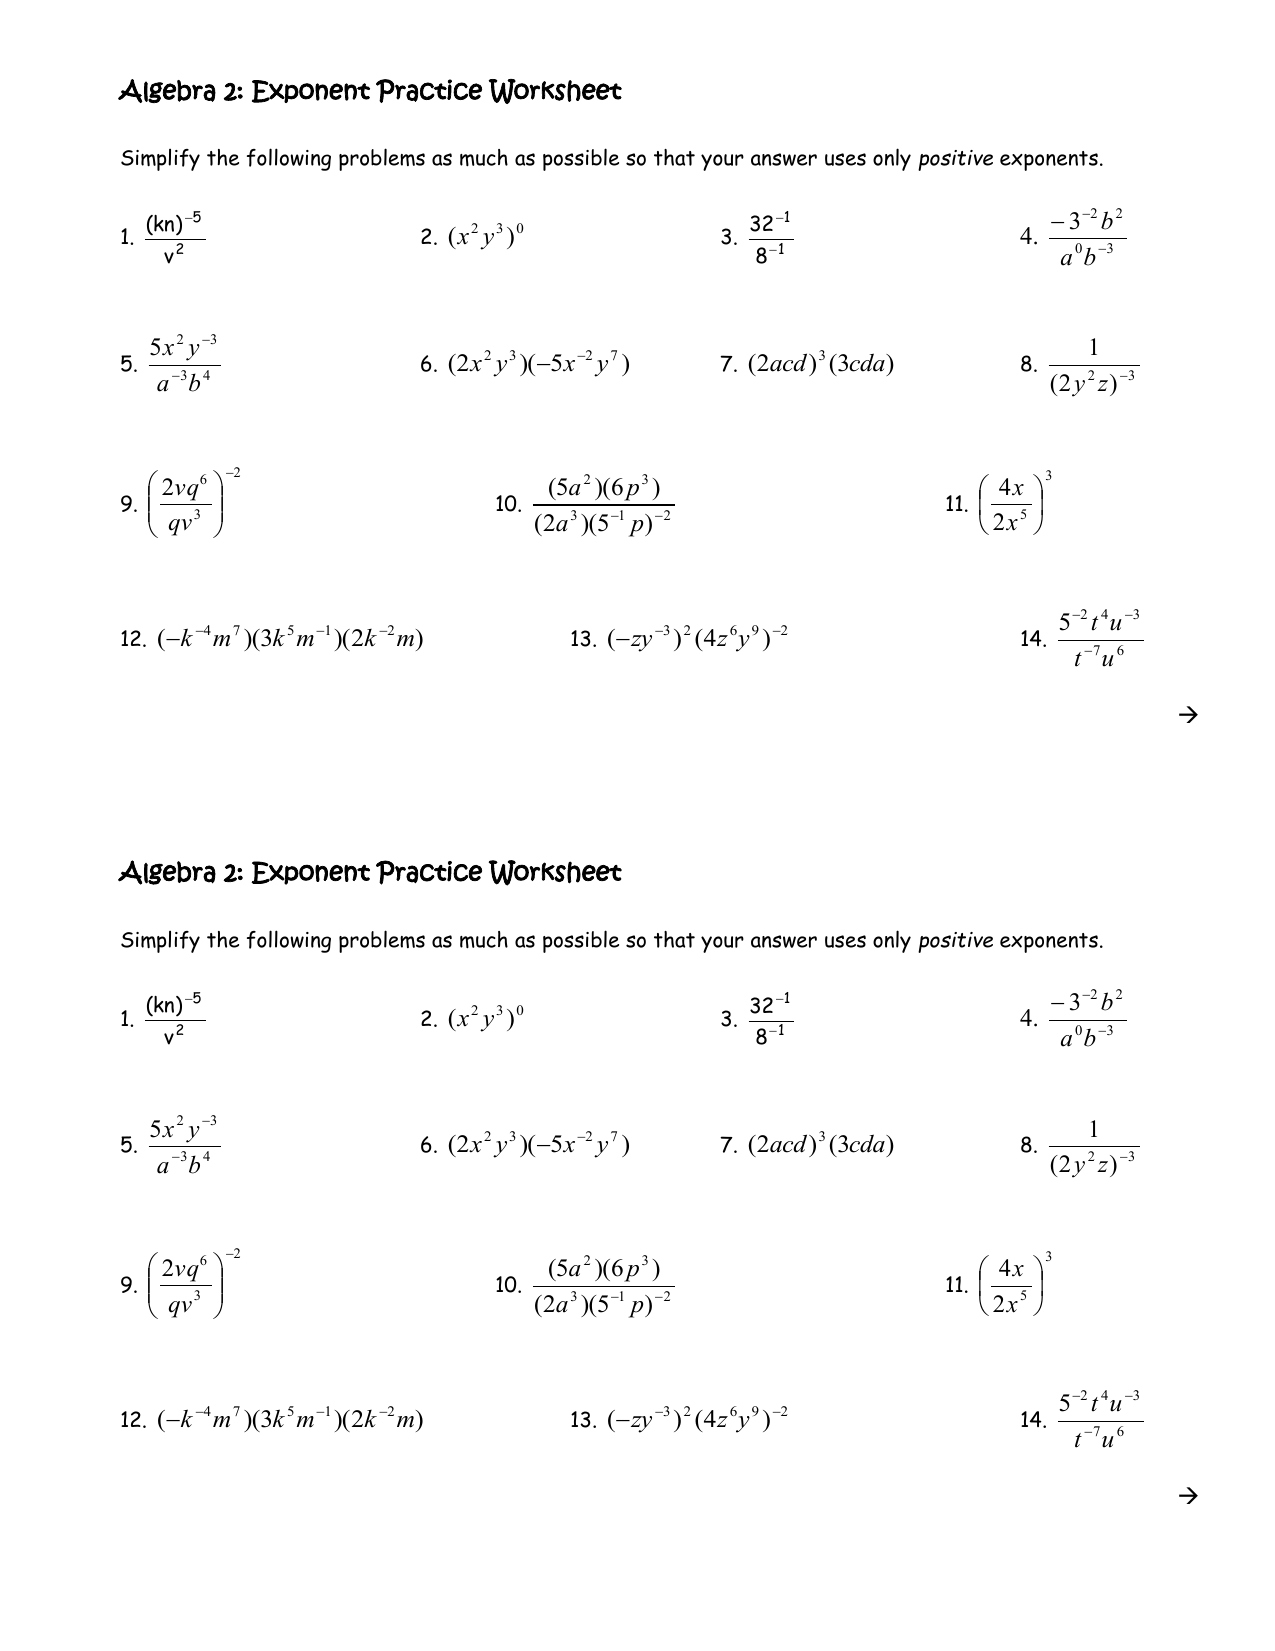 Properties Of Exponents Worksheet Algebra 2